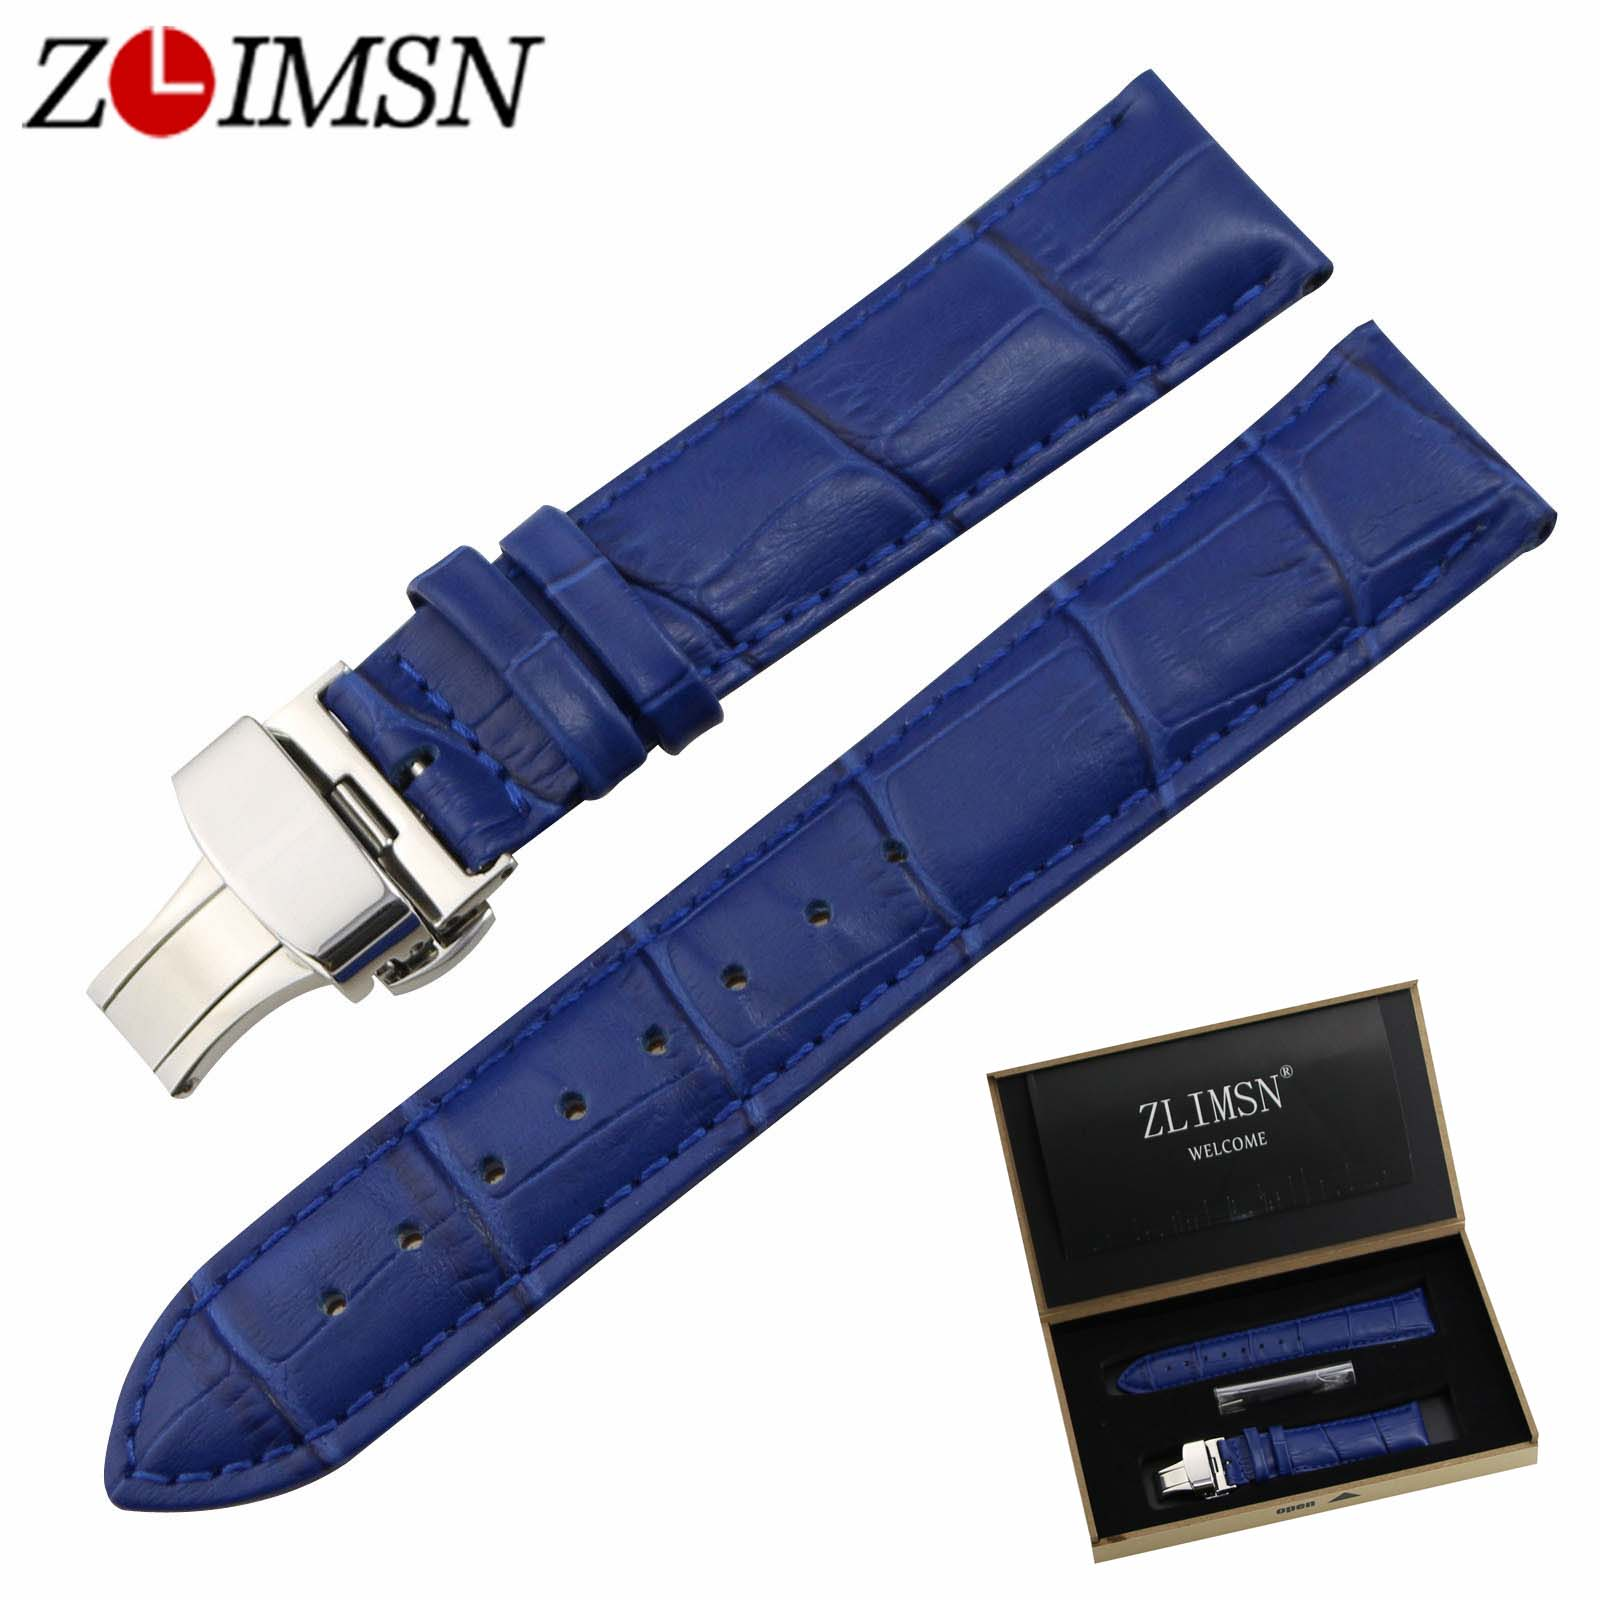 ZLIMSN Italy Genuine Leather Watch Bands Replacement Double Folding Butterfly Clasp Buckle Blue Crocodile Grain Strap 14mm~20mm free shipping new butterfly deployment watch bands double push button fold strap buckle clasp